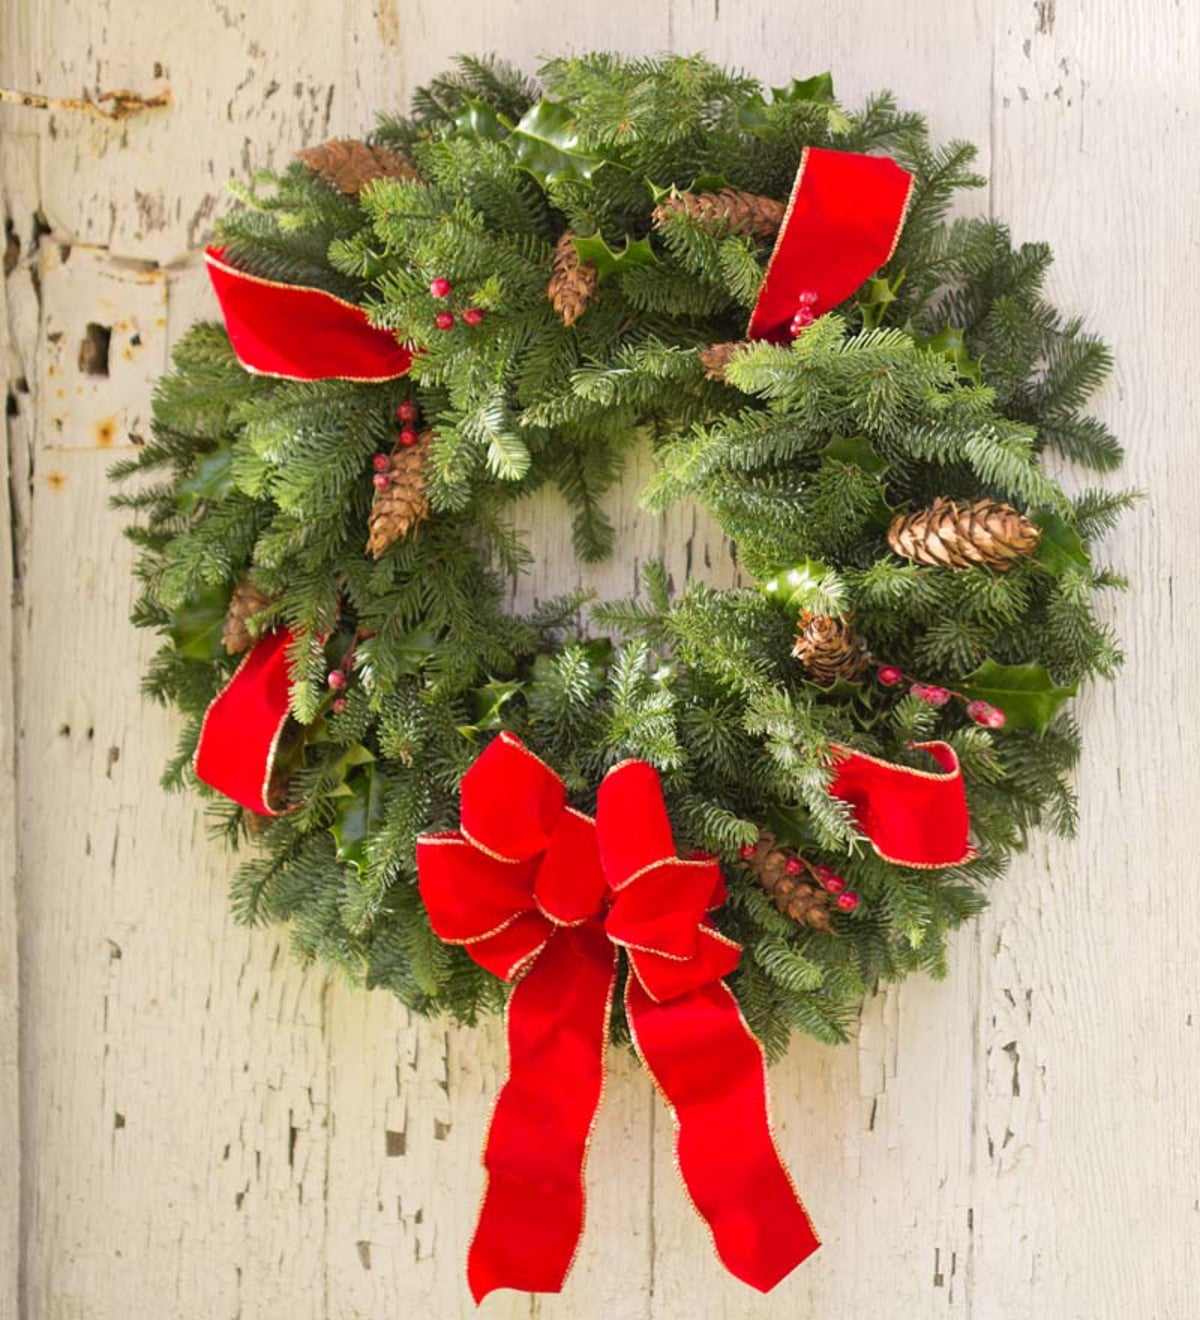 Handmade Fresh Holiday Wreath With Holly